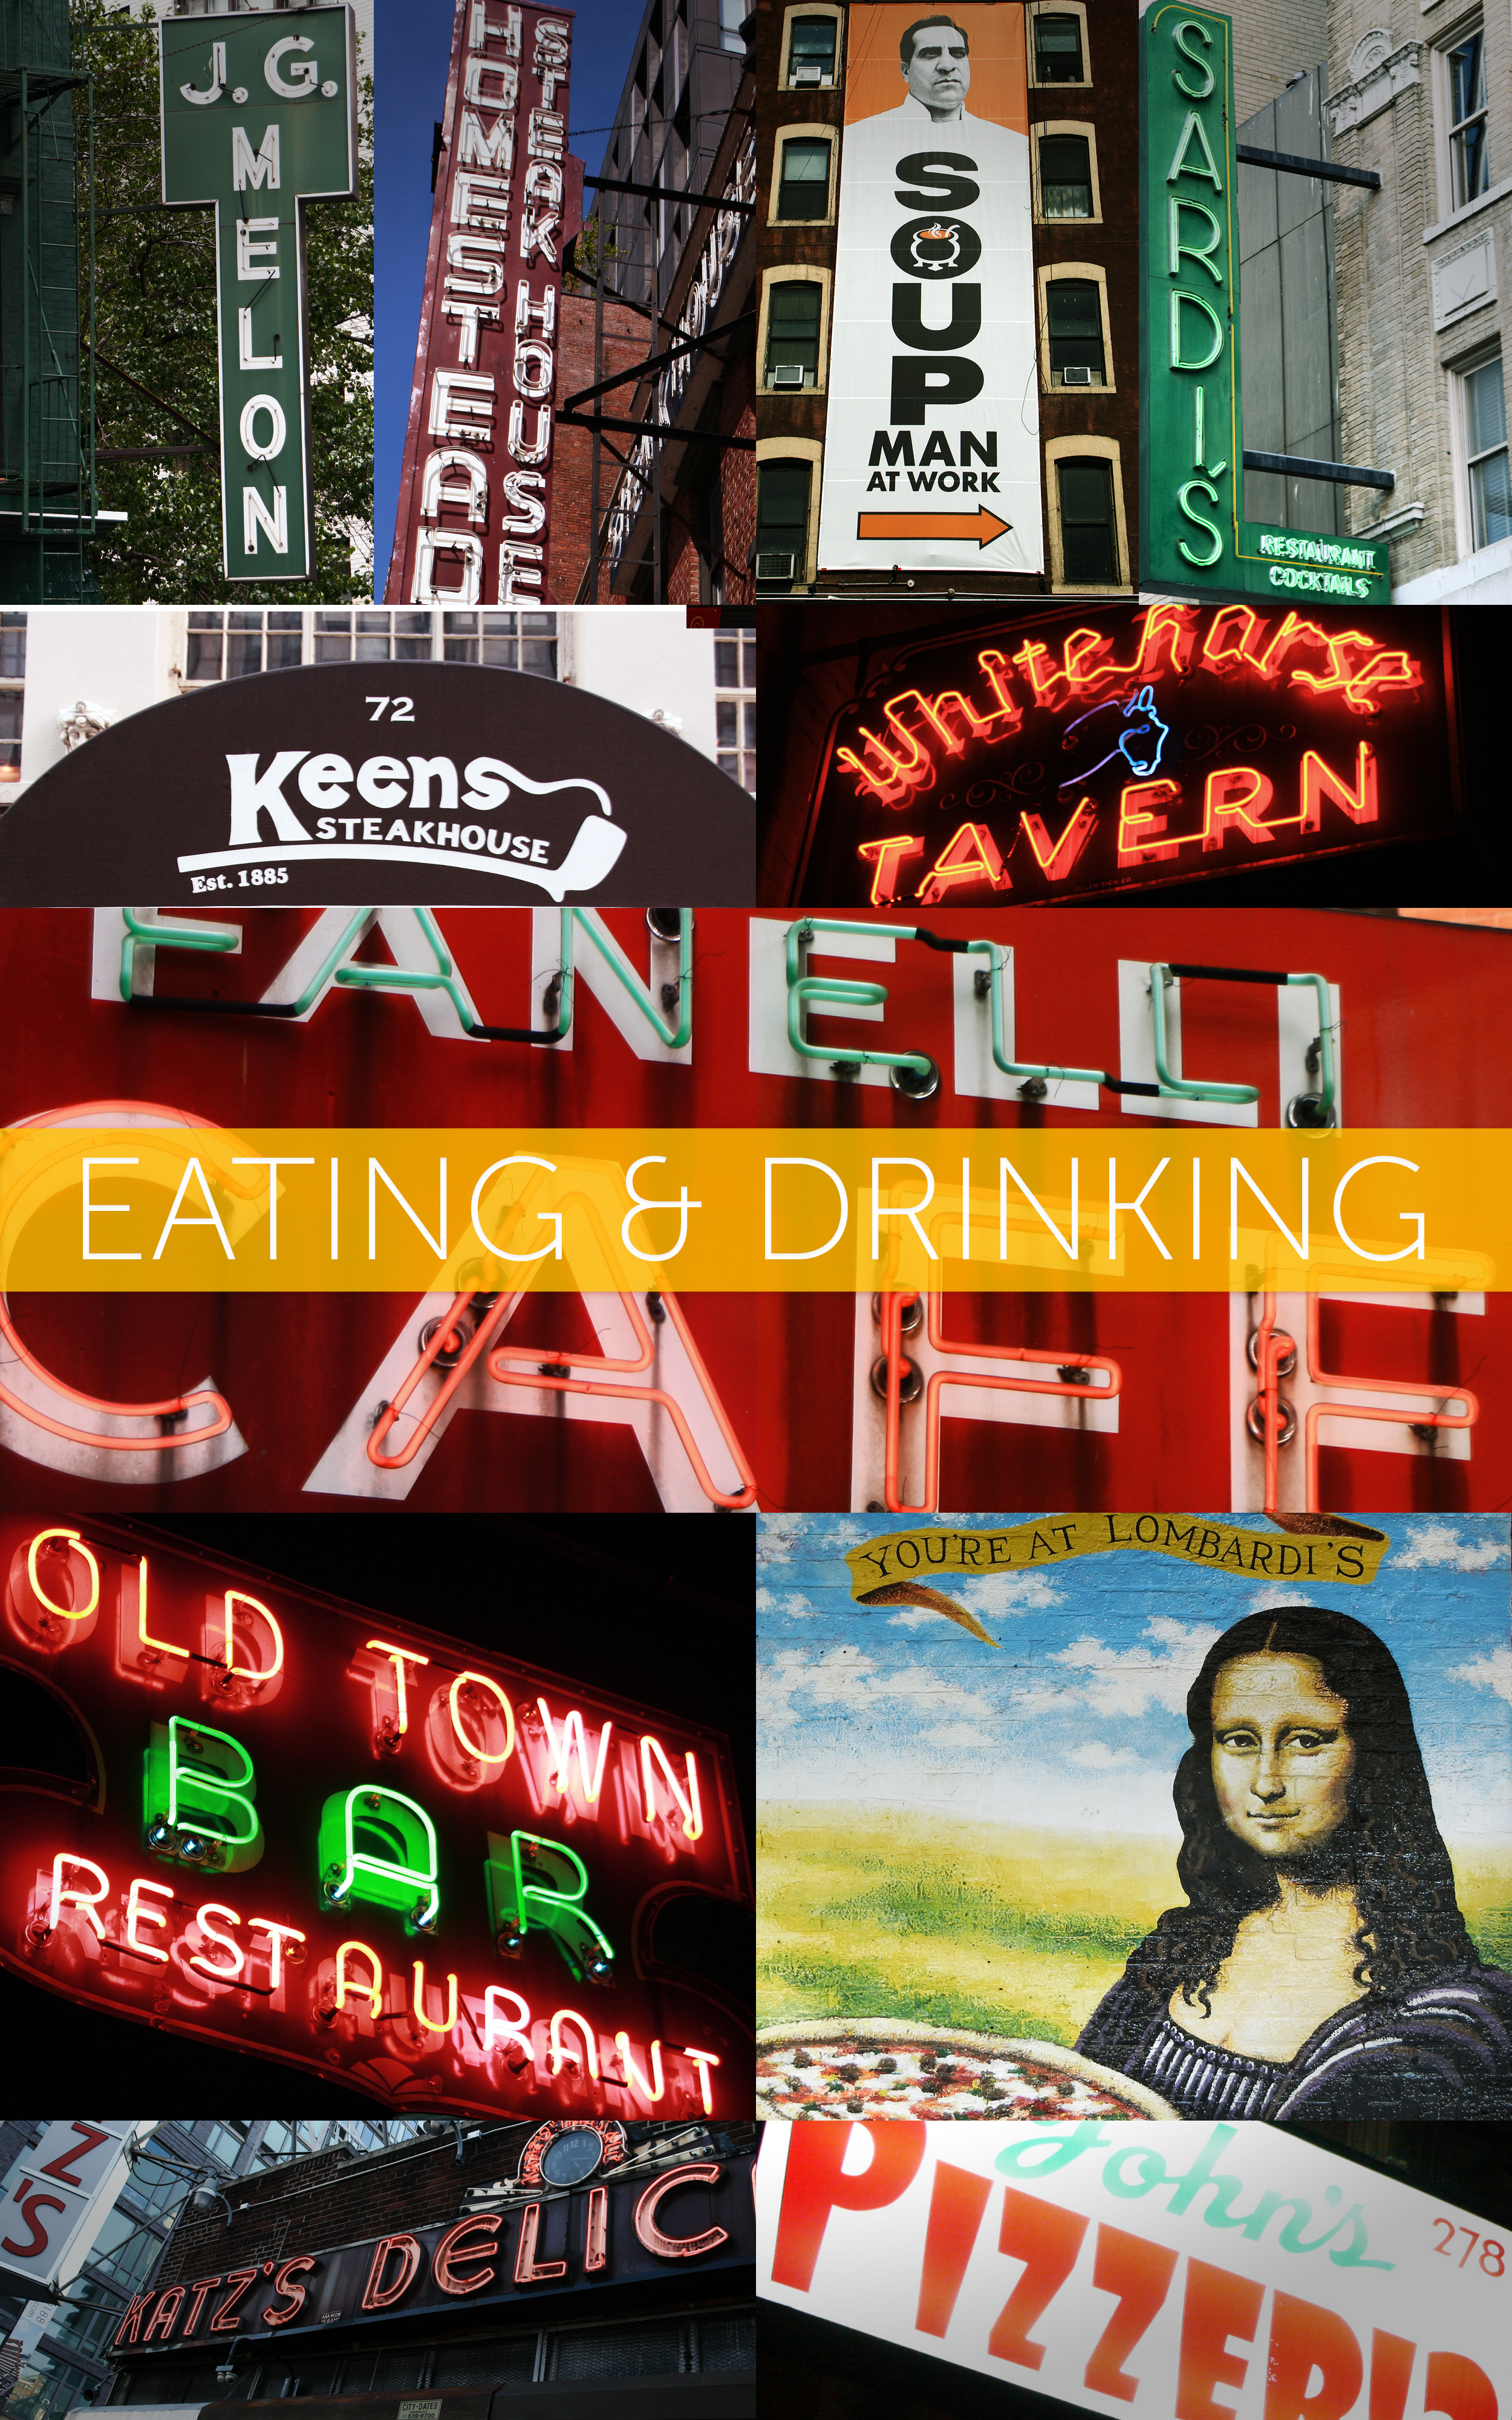 Kindle_Eating&Drinking_actioned_072913.jpg